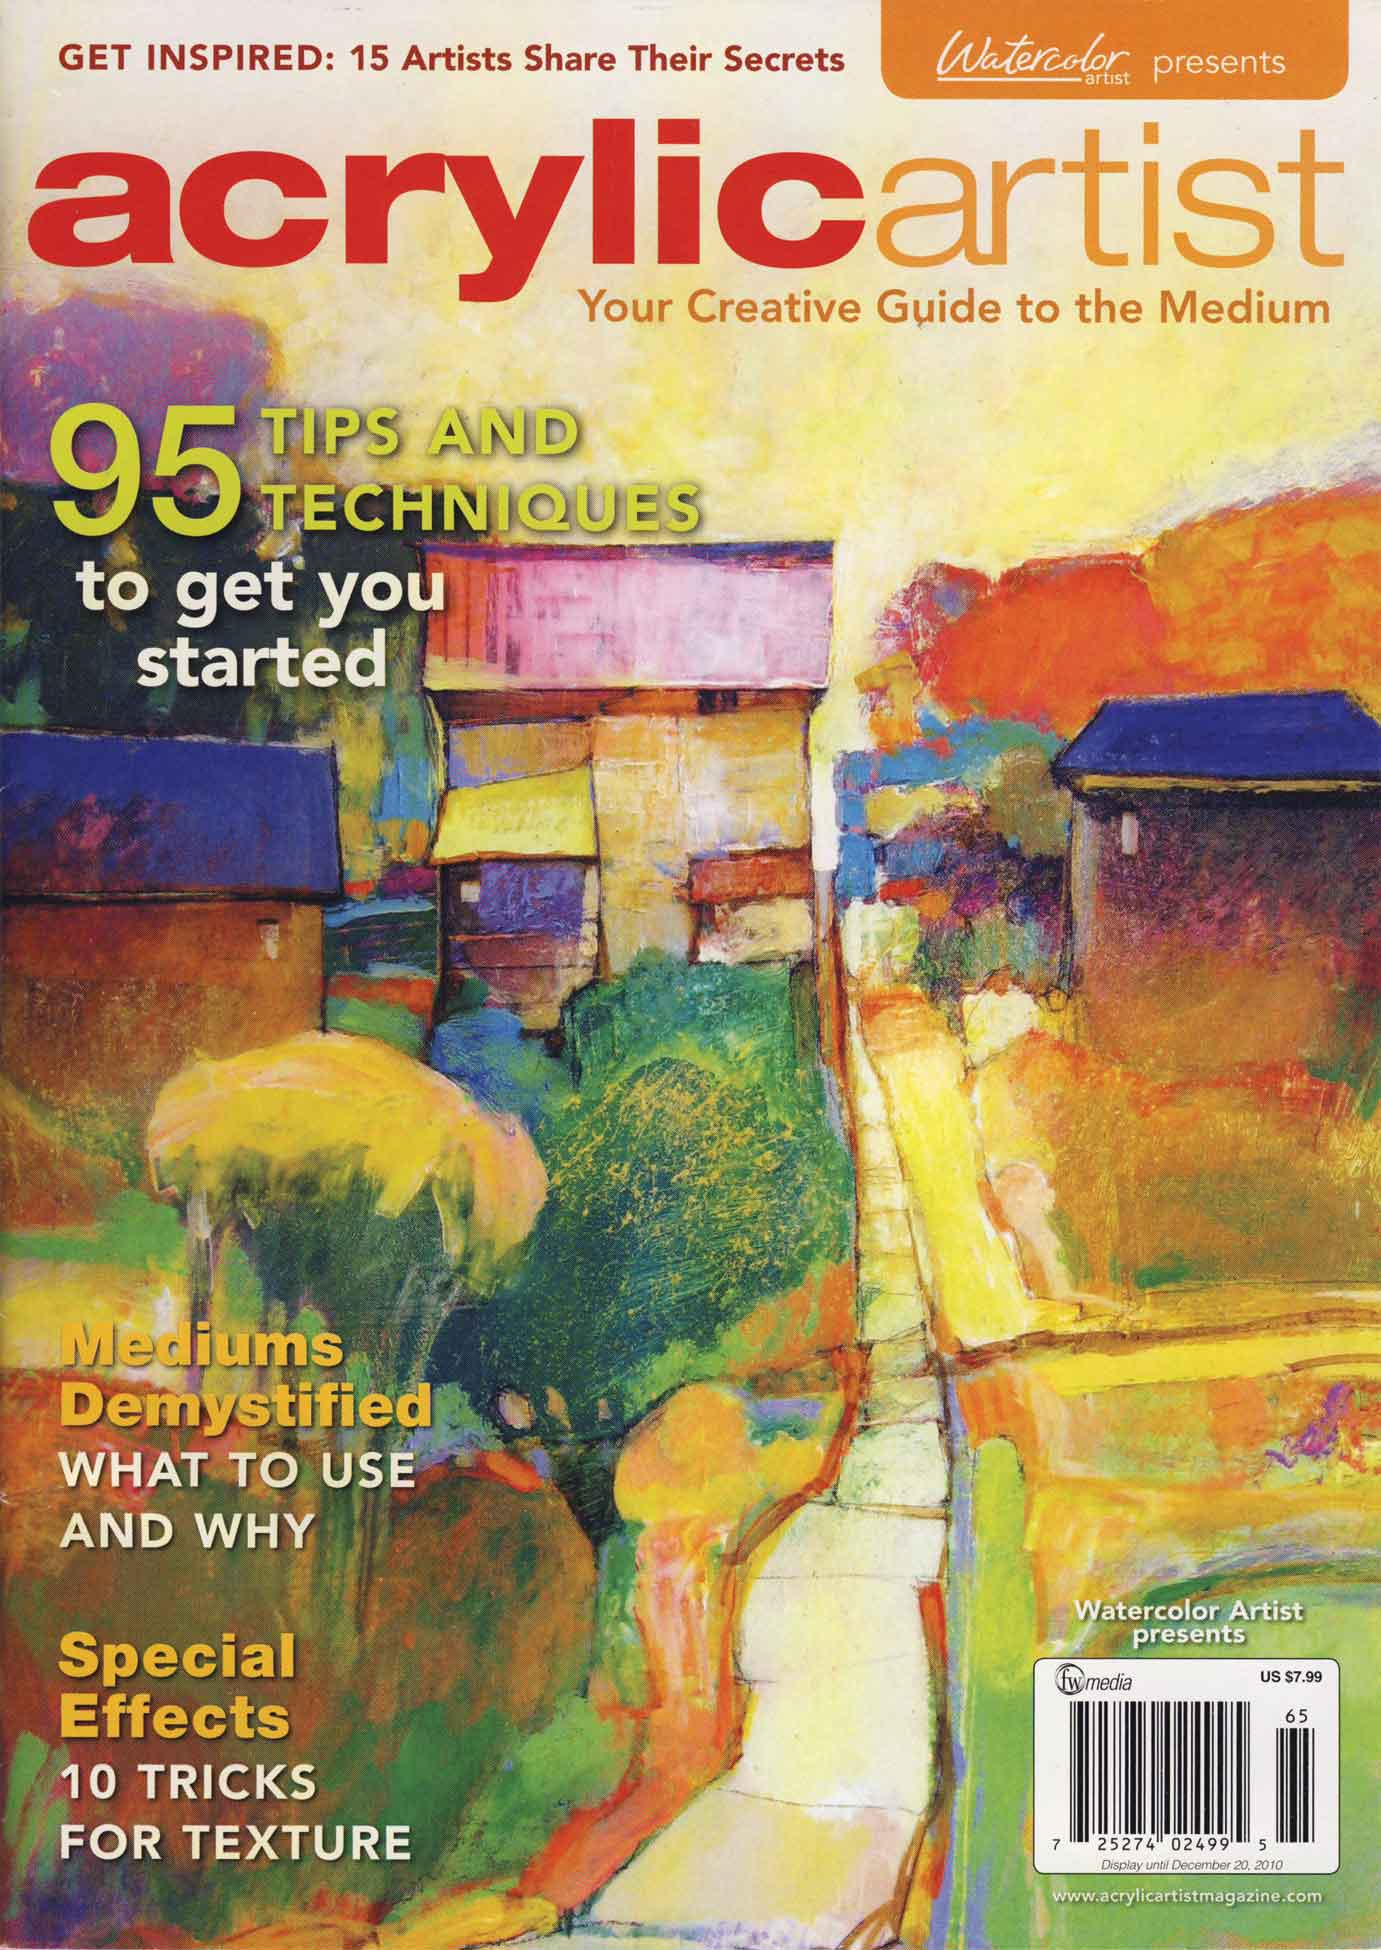 Renew watercolor artist magazine - Mark Gould Dancing Crow Studio